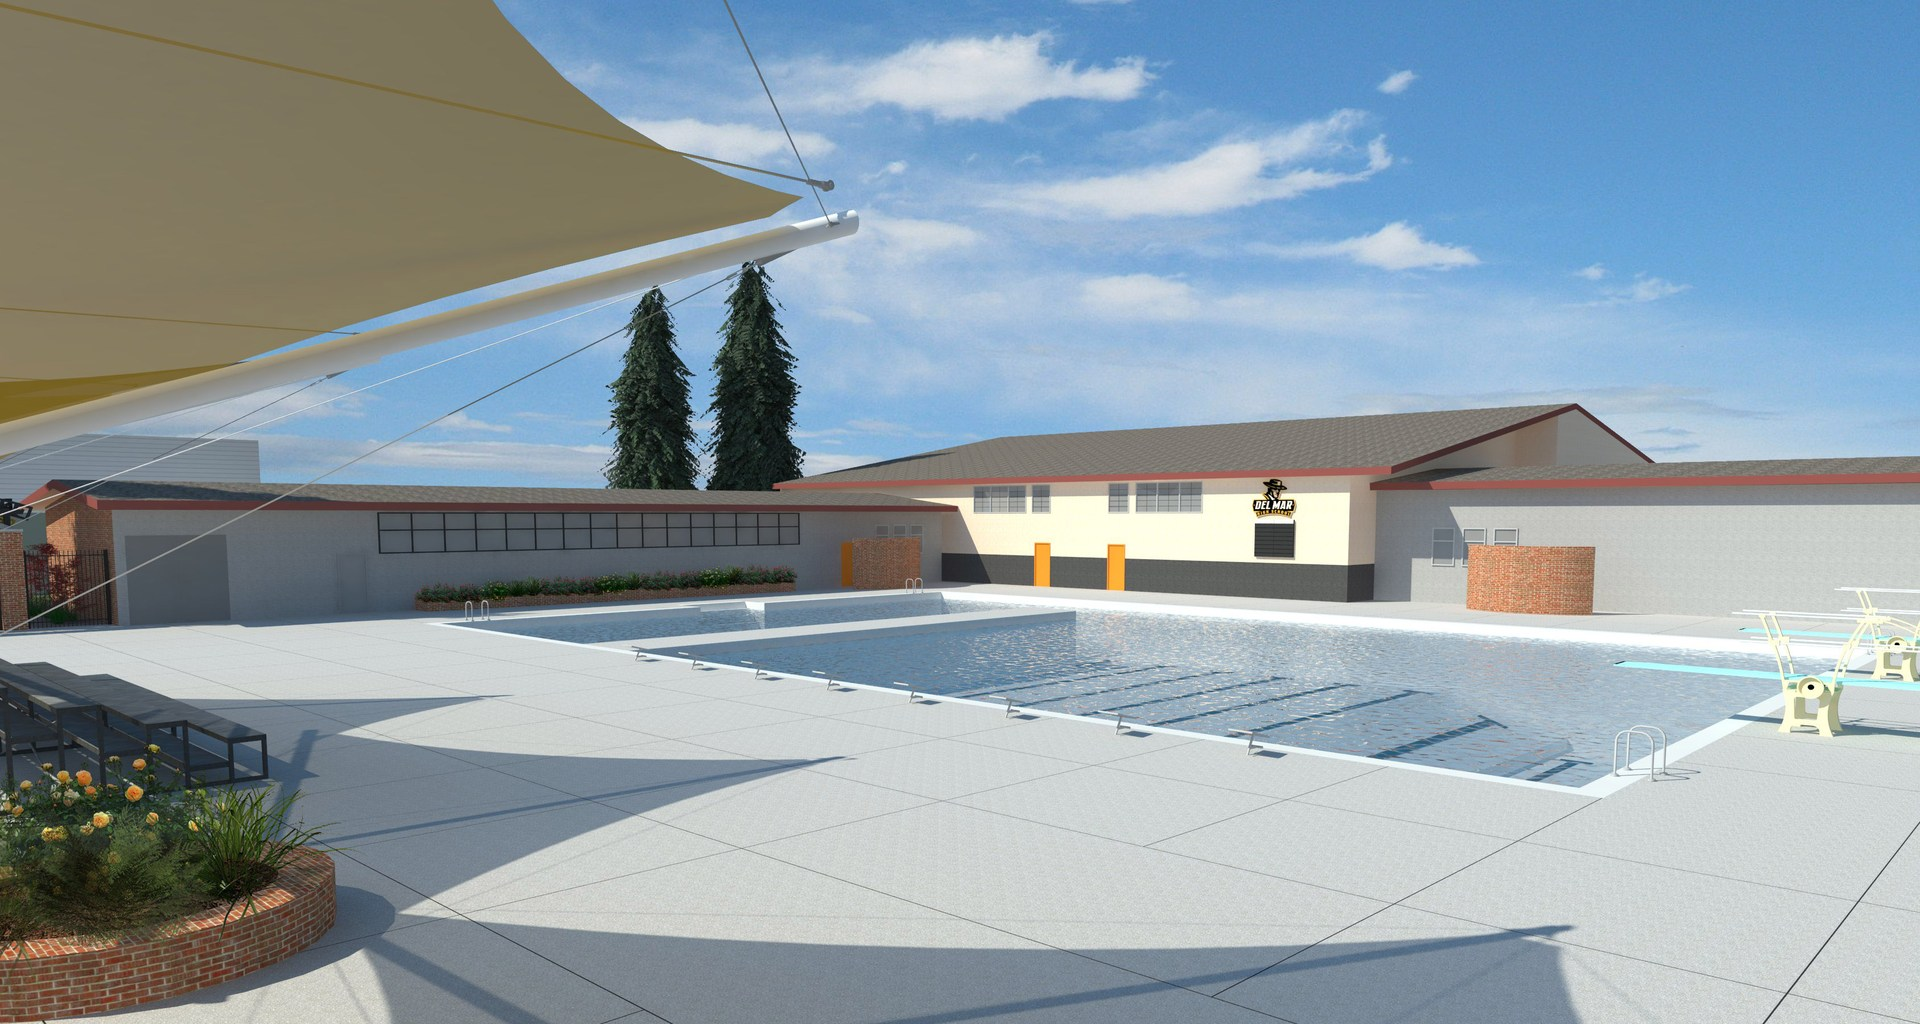 Image of new swimming pool design